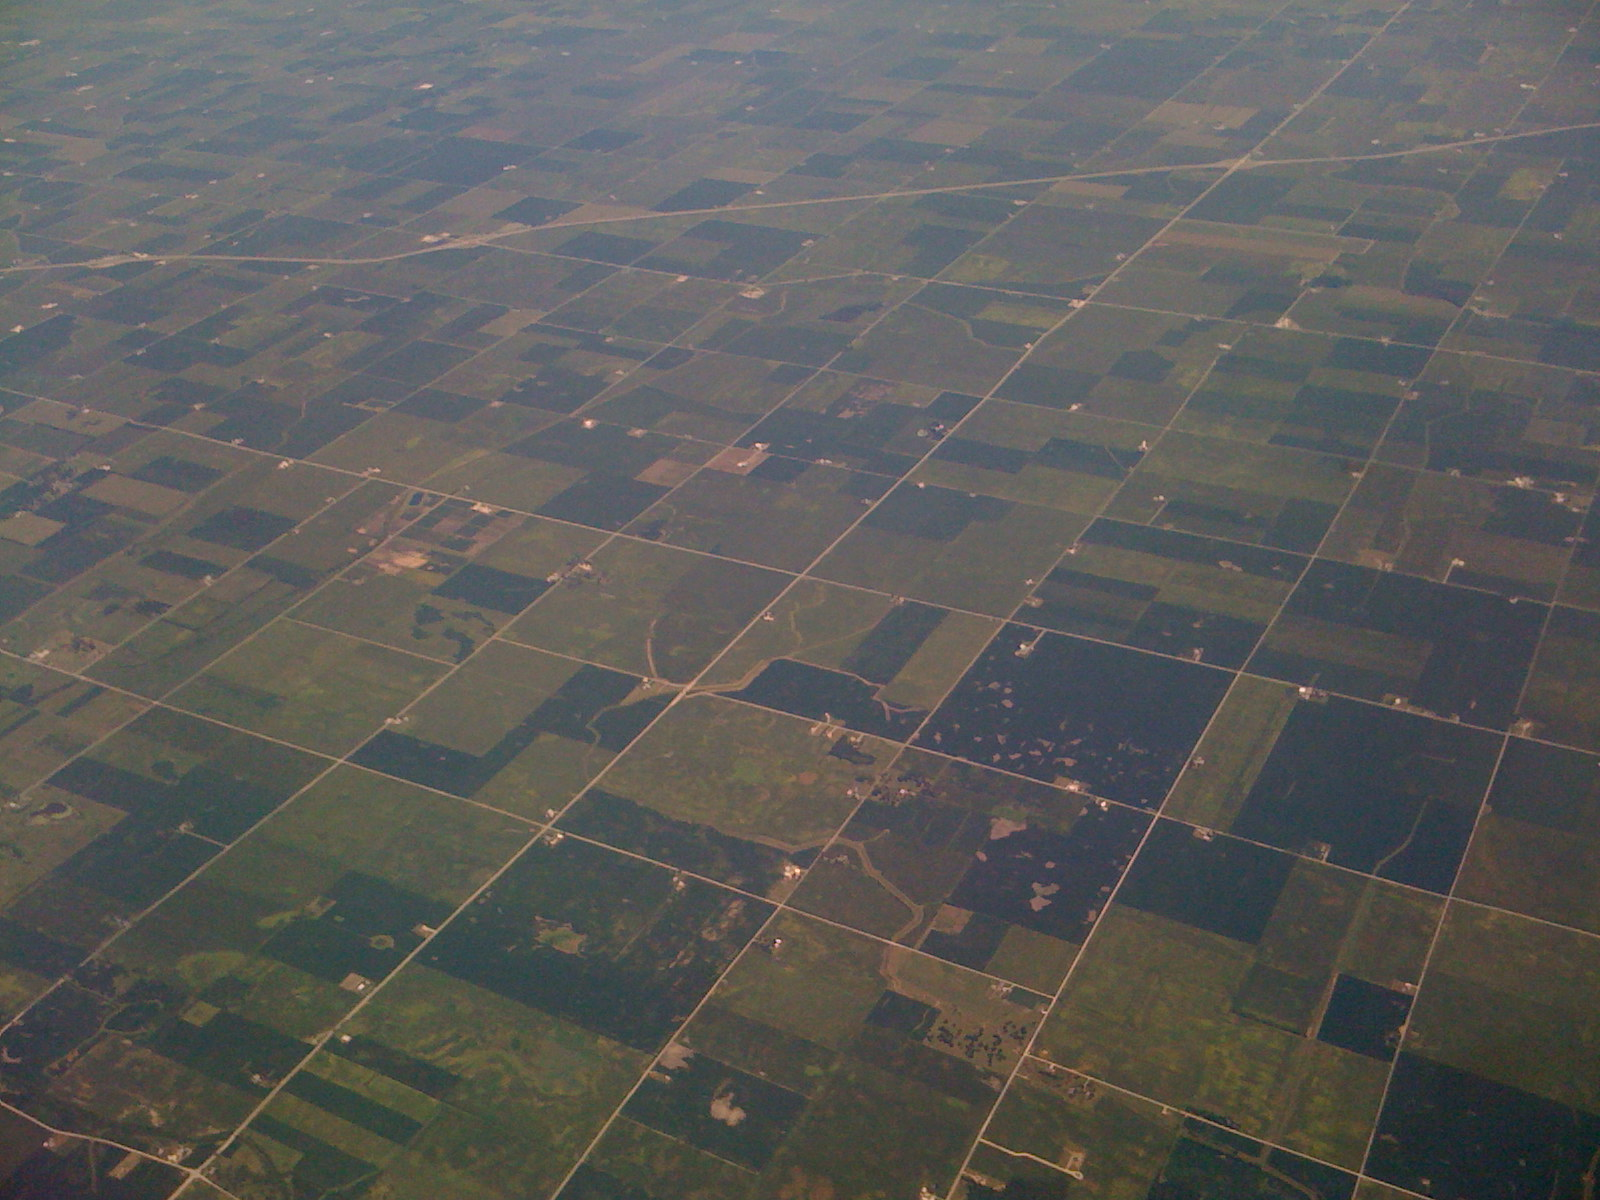 https://upload.wikimedia.org/wikipedia/commons/9/94/Indy_farmland.jpg